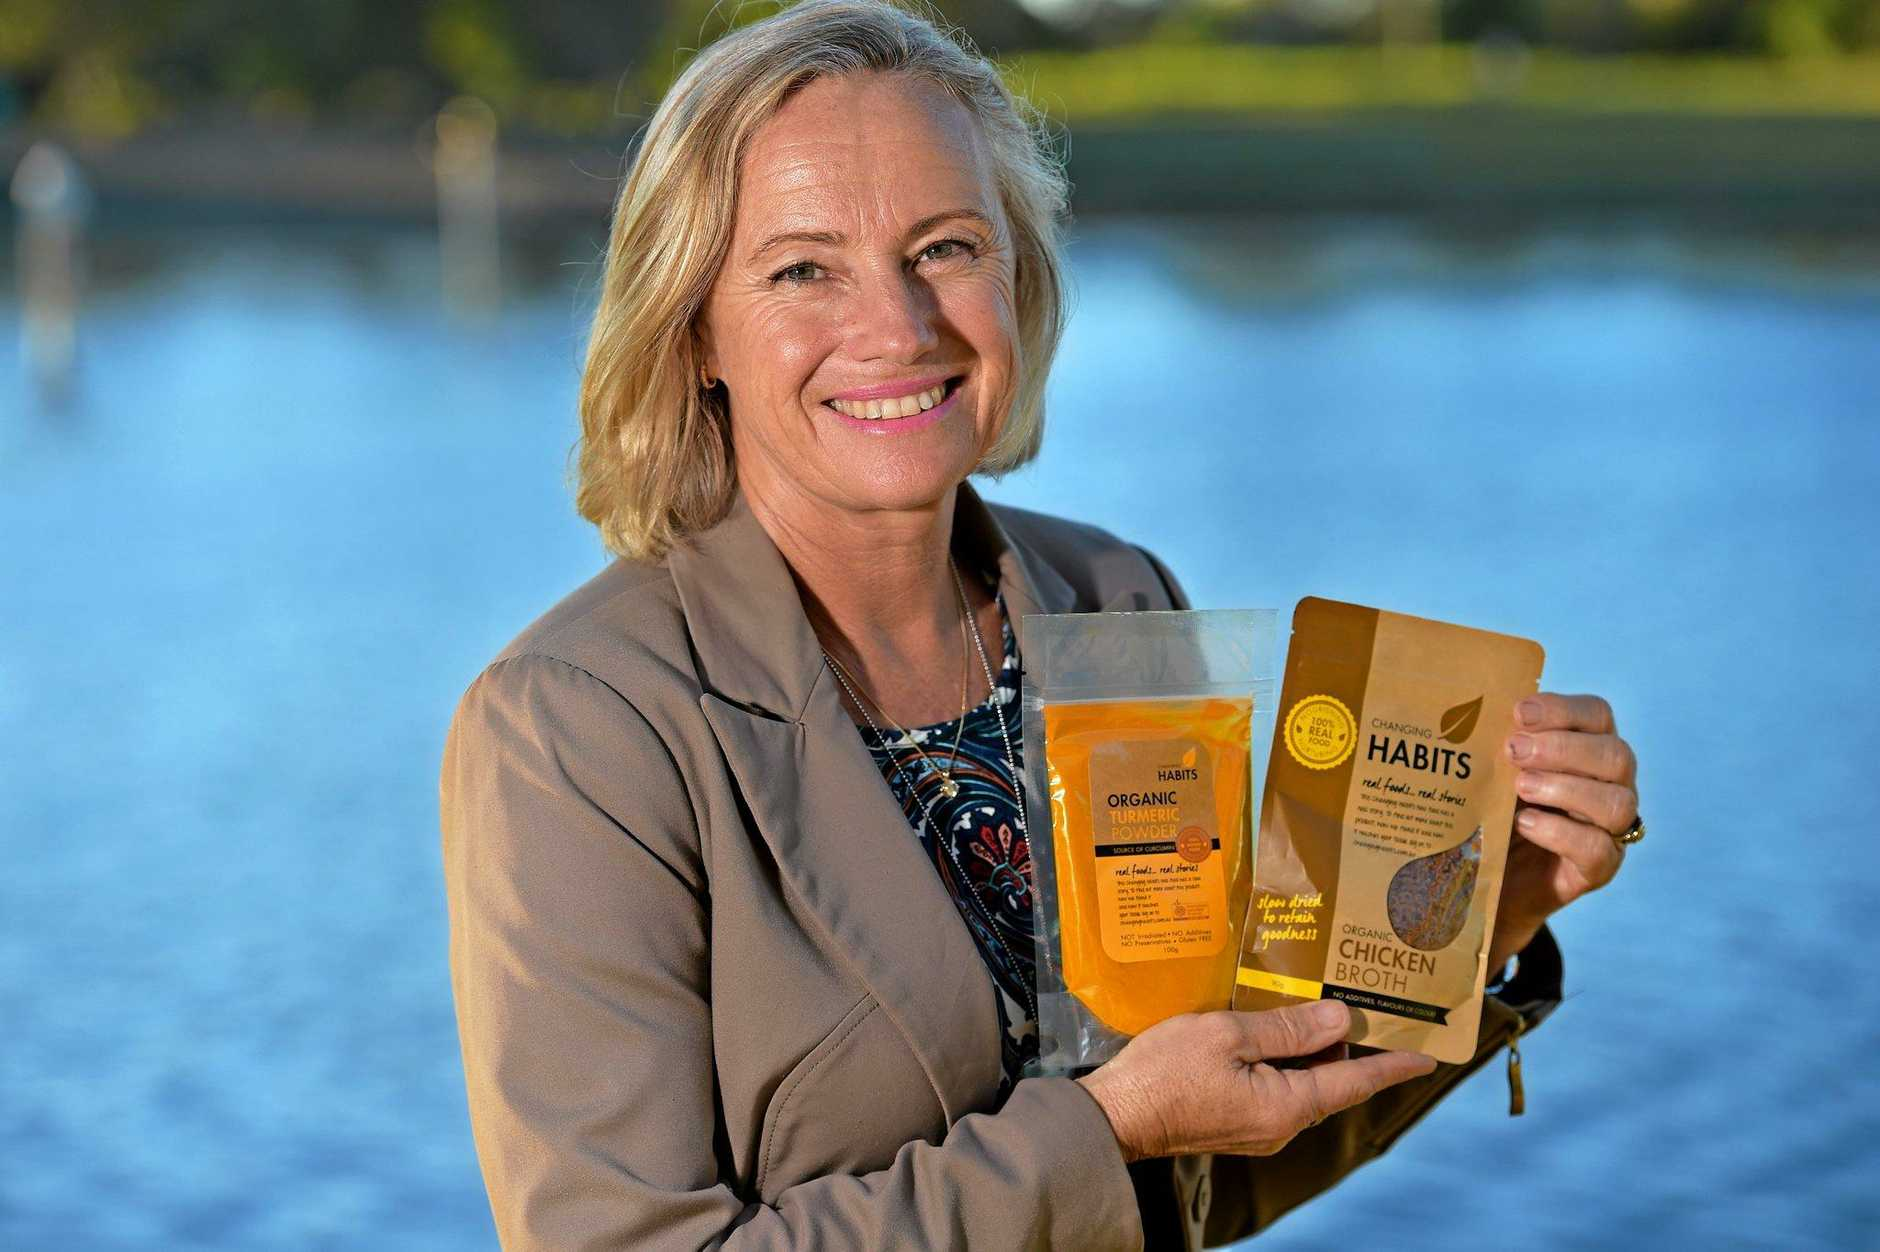 EXPERT: Cyndi O'Meara talks about food allergies.